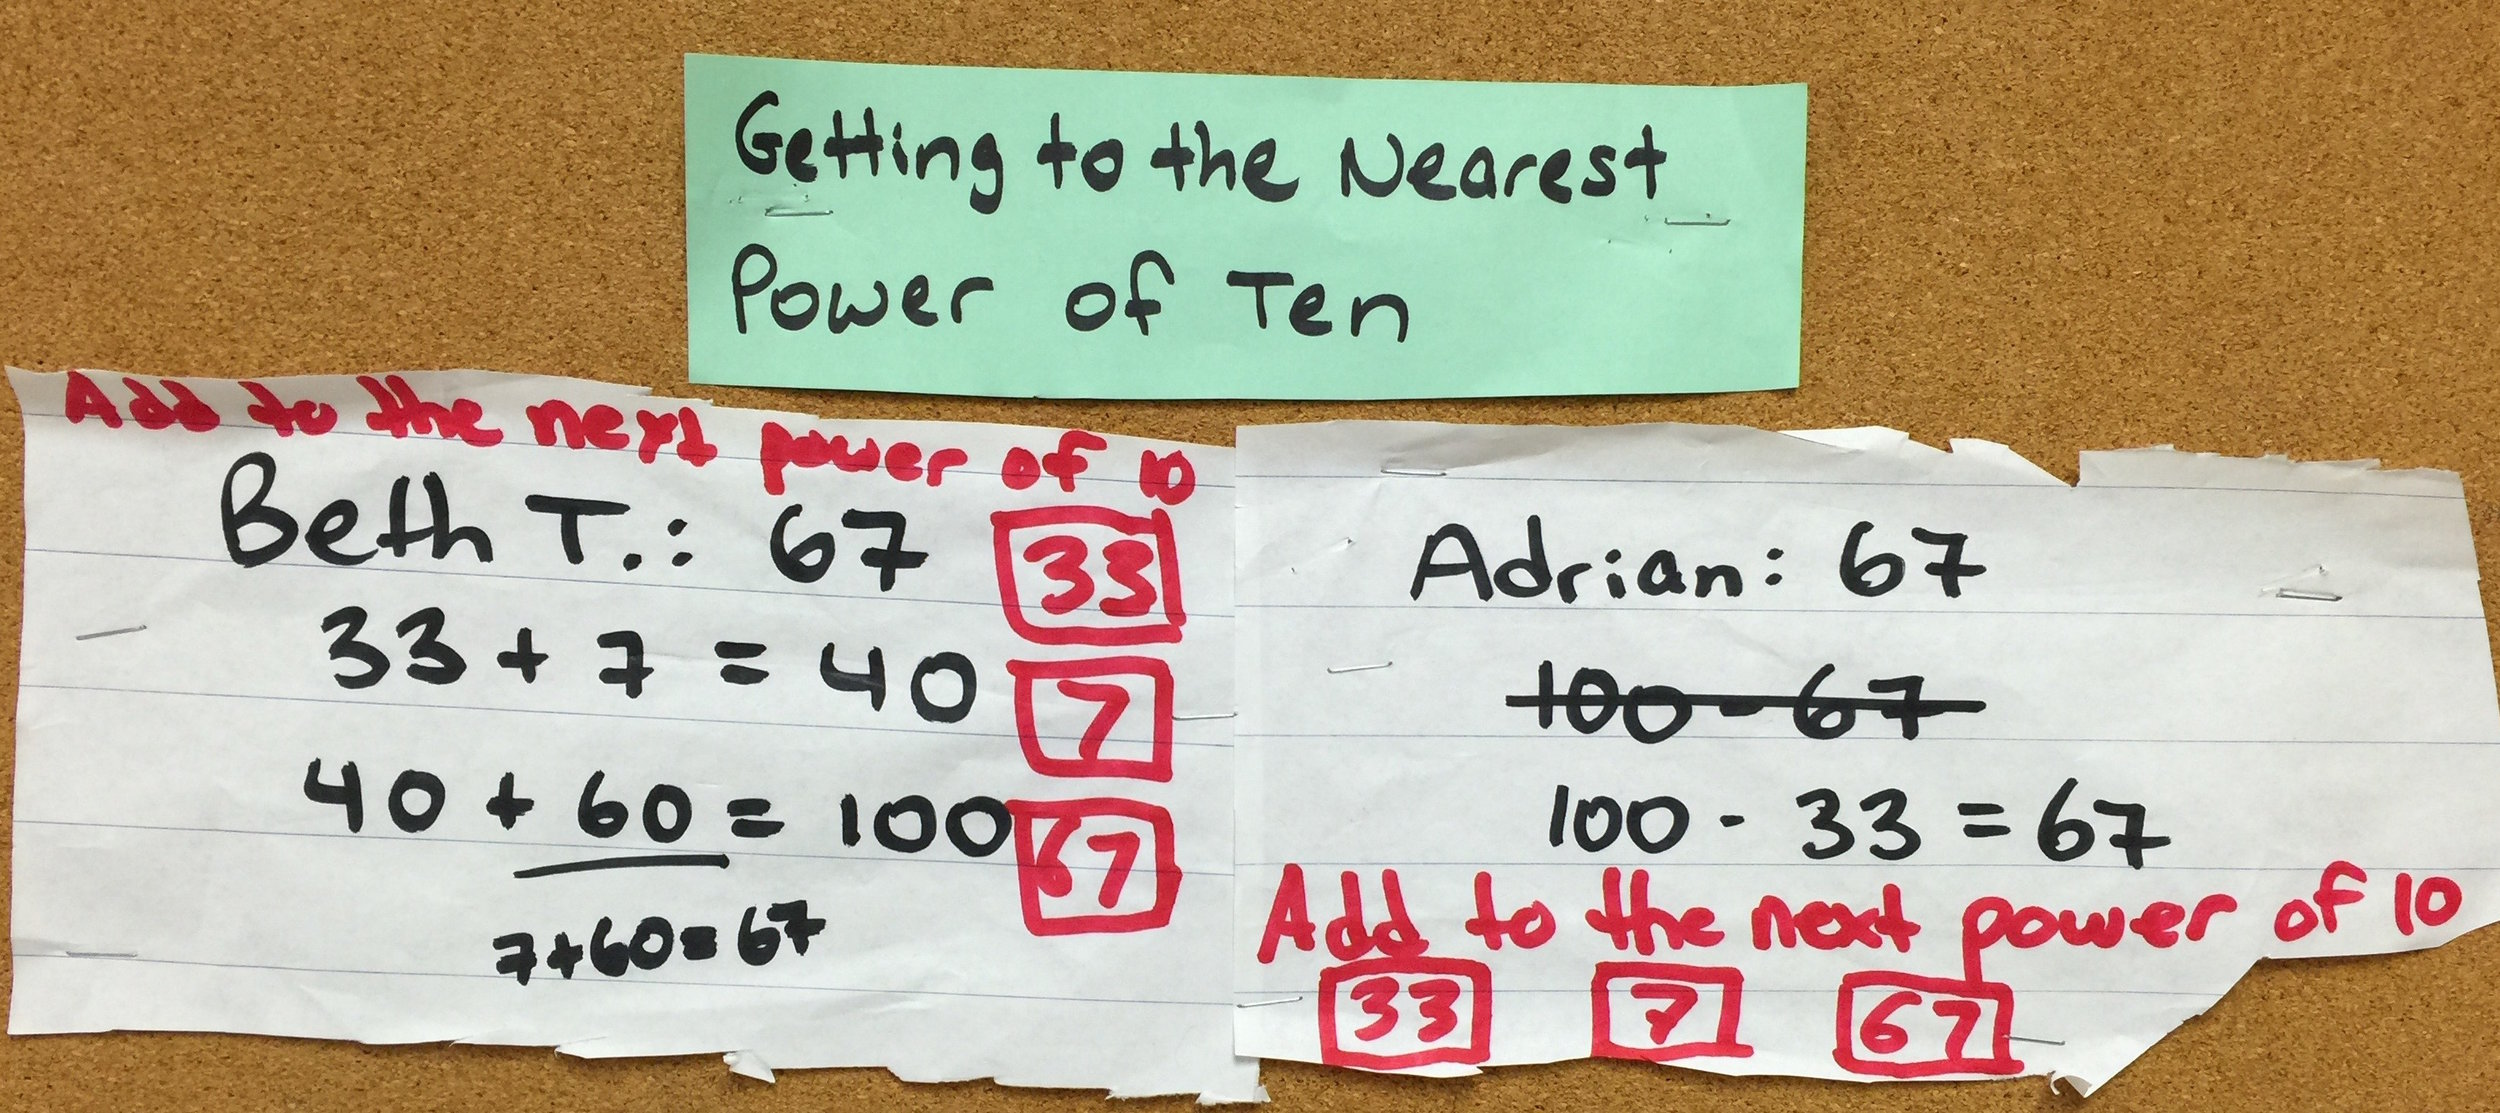 getting-to-the-nearest-power-of-10.jpg